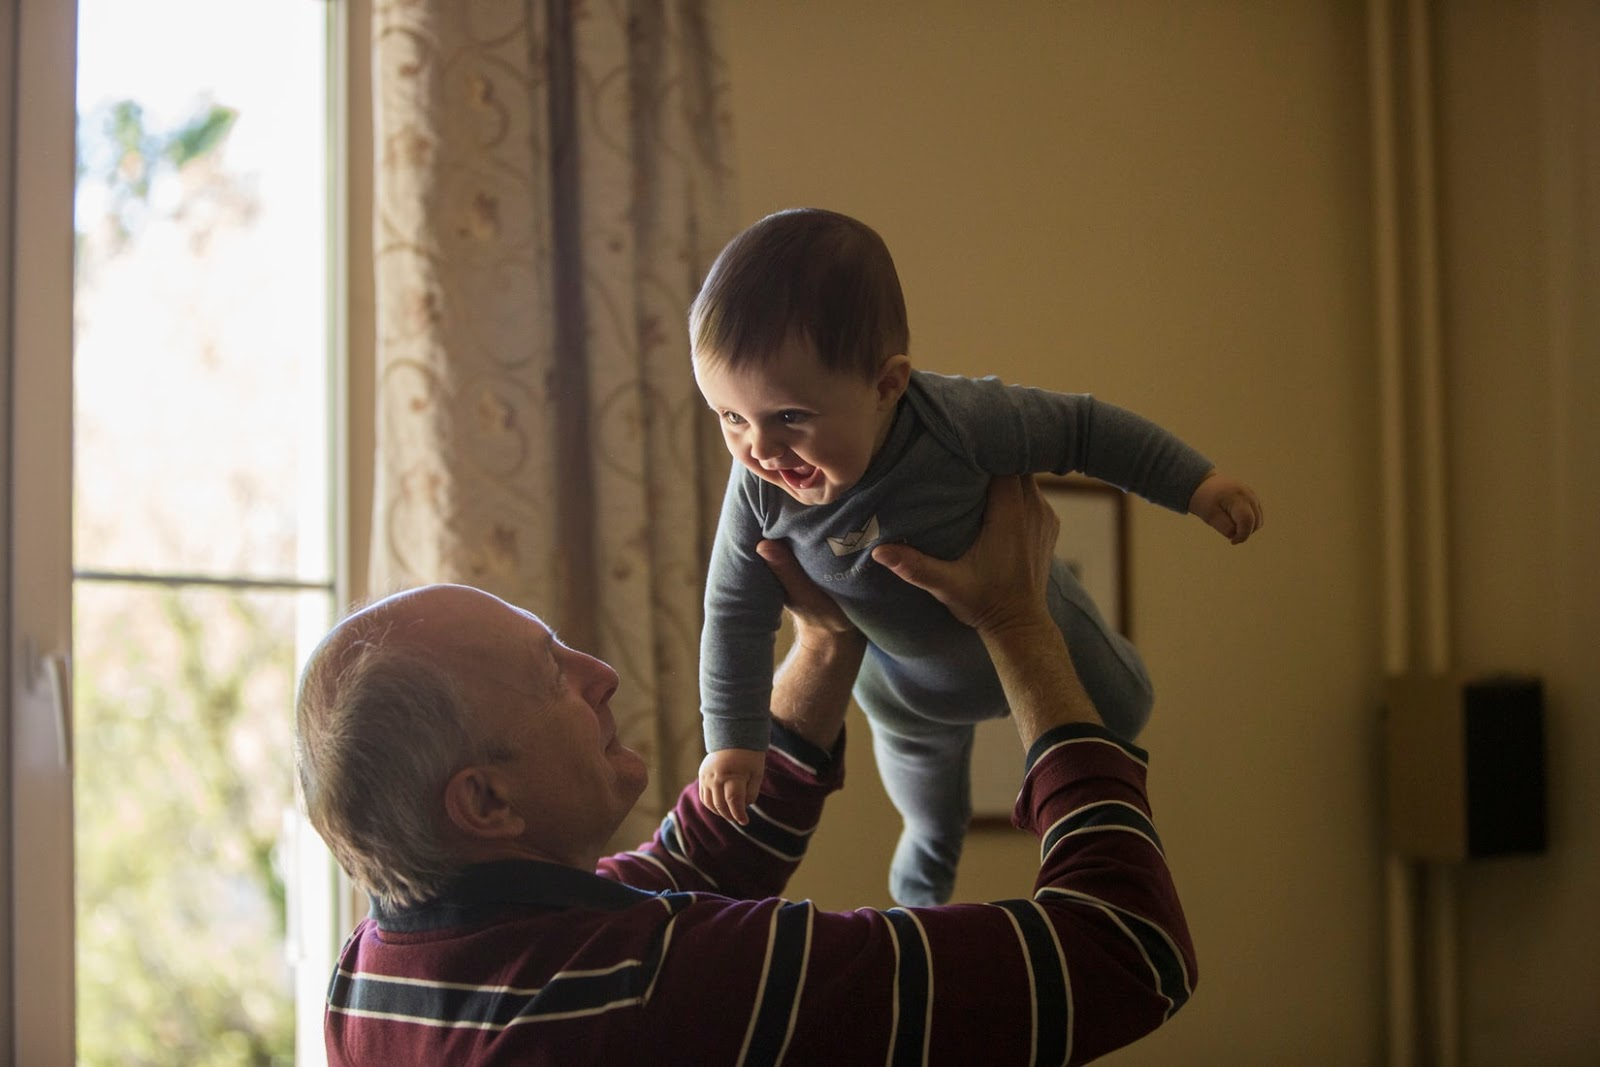 Grandparents Can Help Children Grow Up Happier According To Oxford University